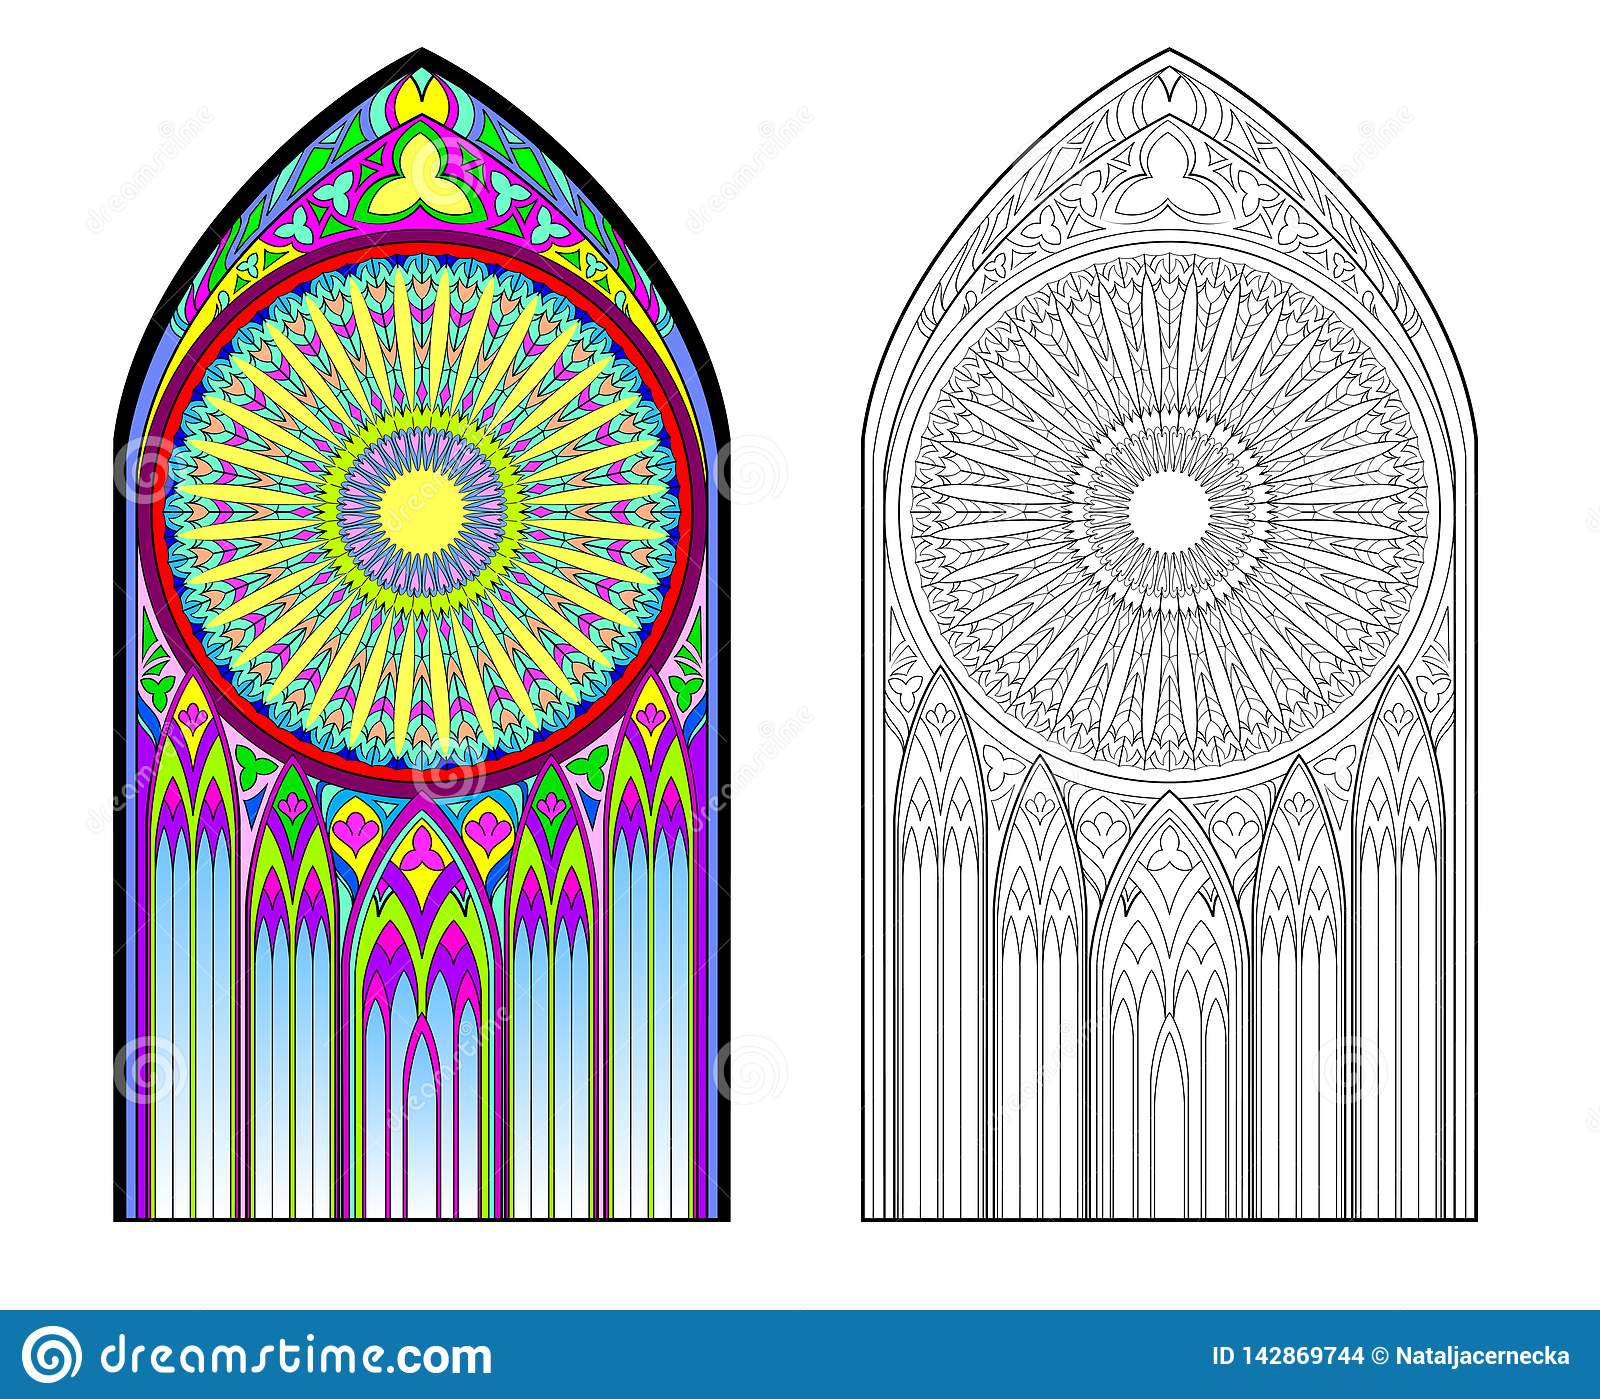 Colorful And Black And White Image Of Gothic Stained Glass